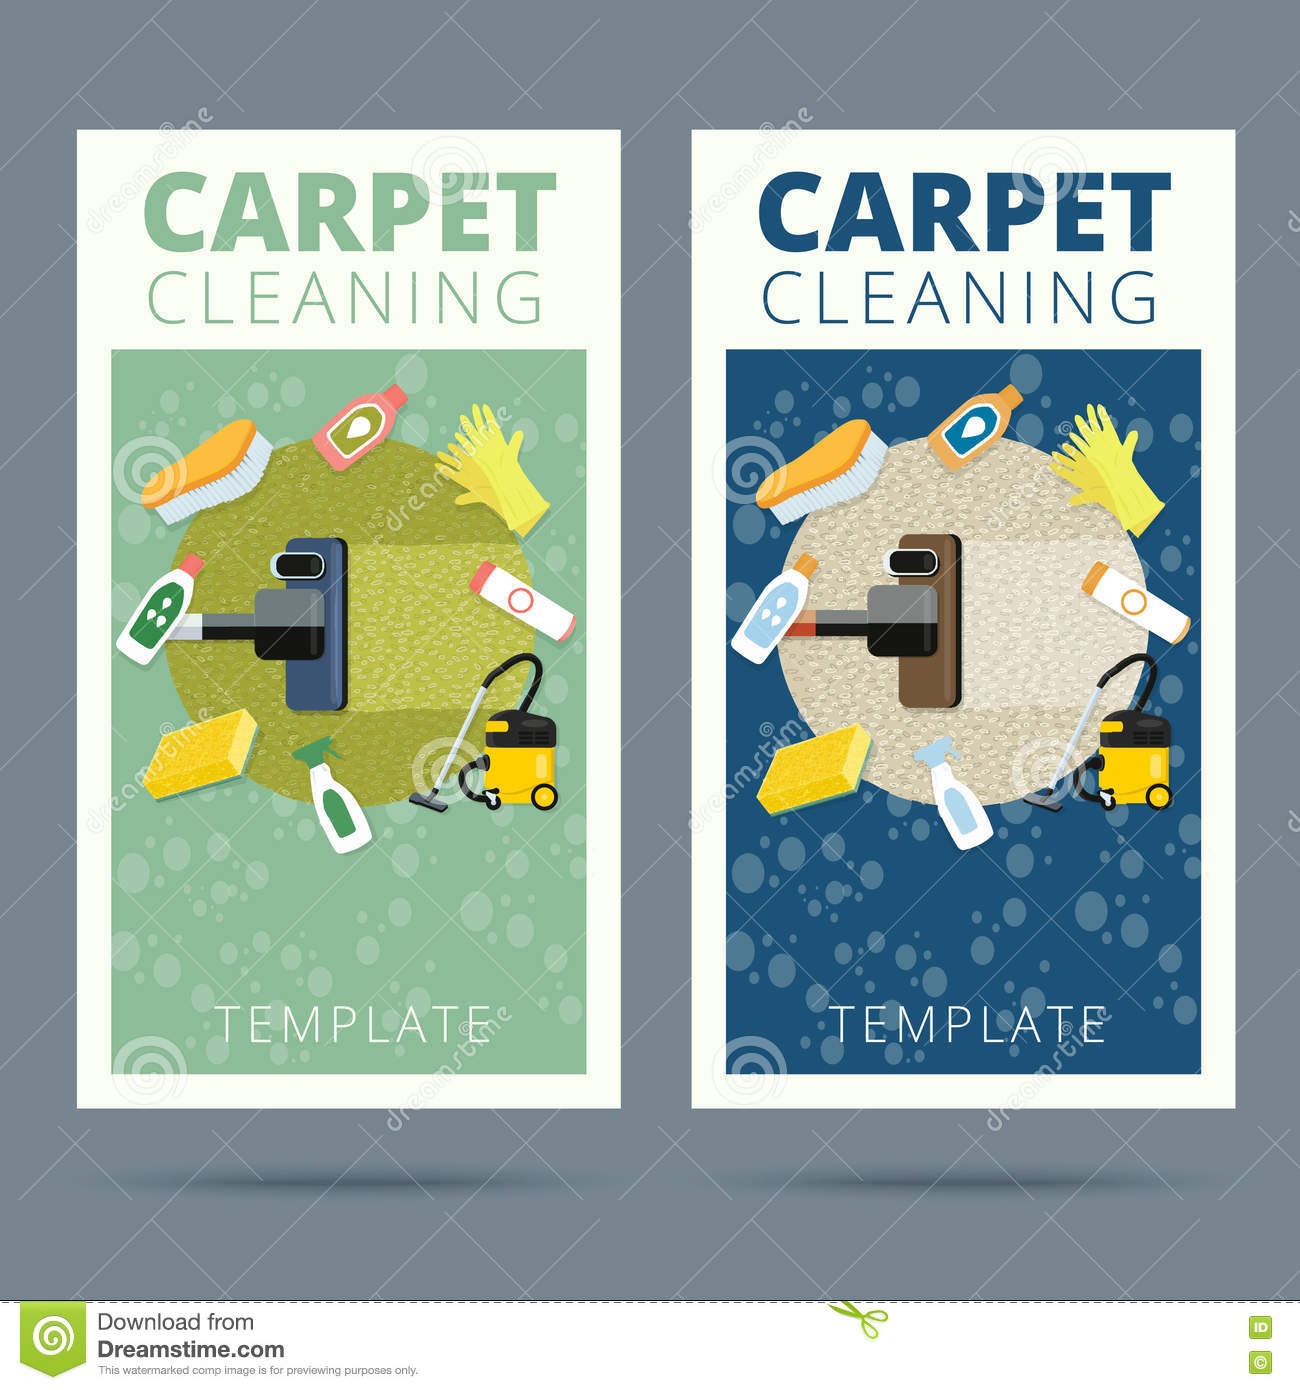 Carpet cleaning service vector illustration business card conce carpet cleaning service vector illustration business card conce magicingreecefo Gallery